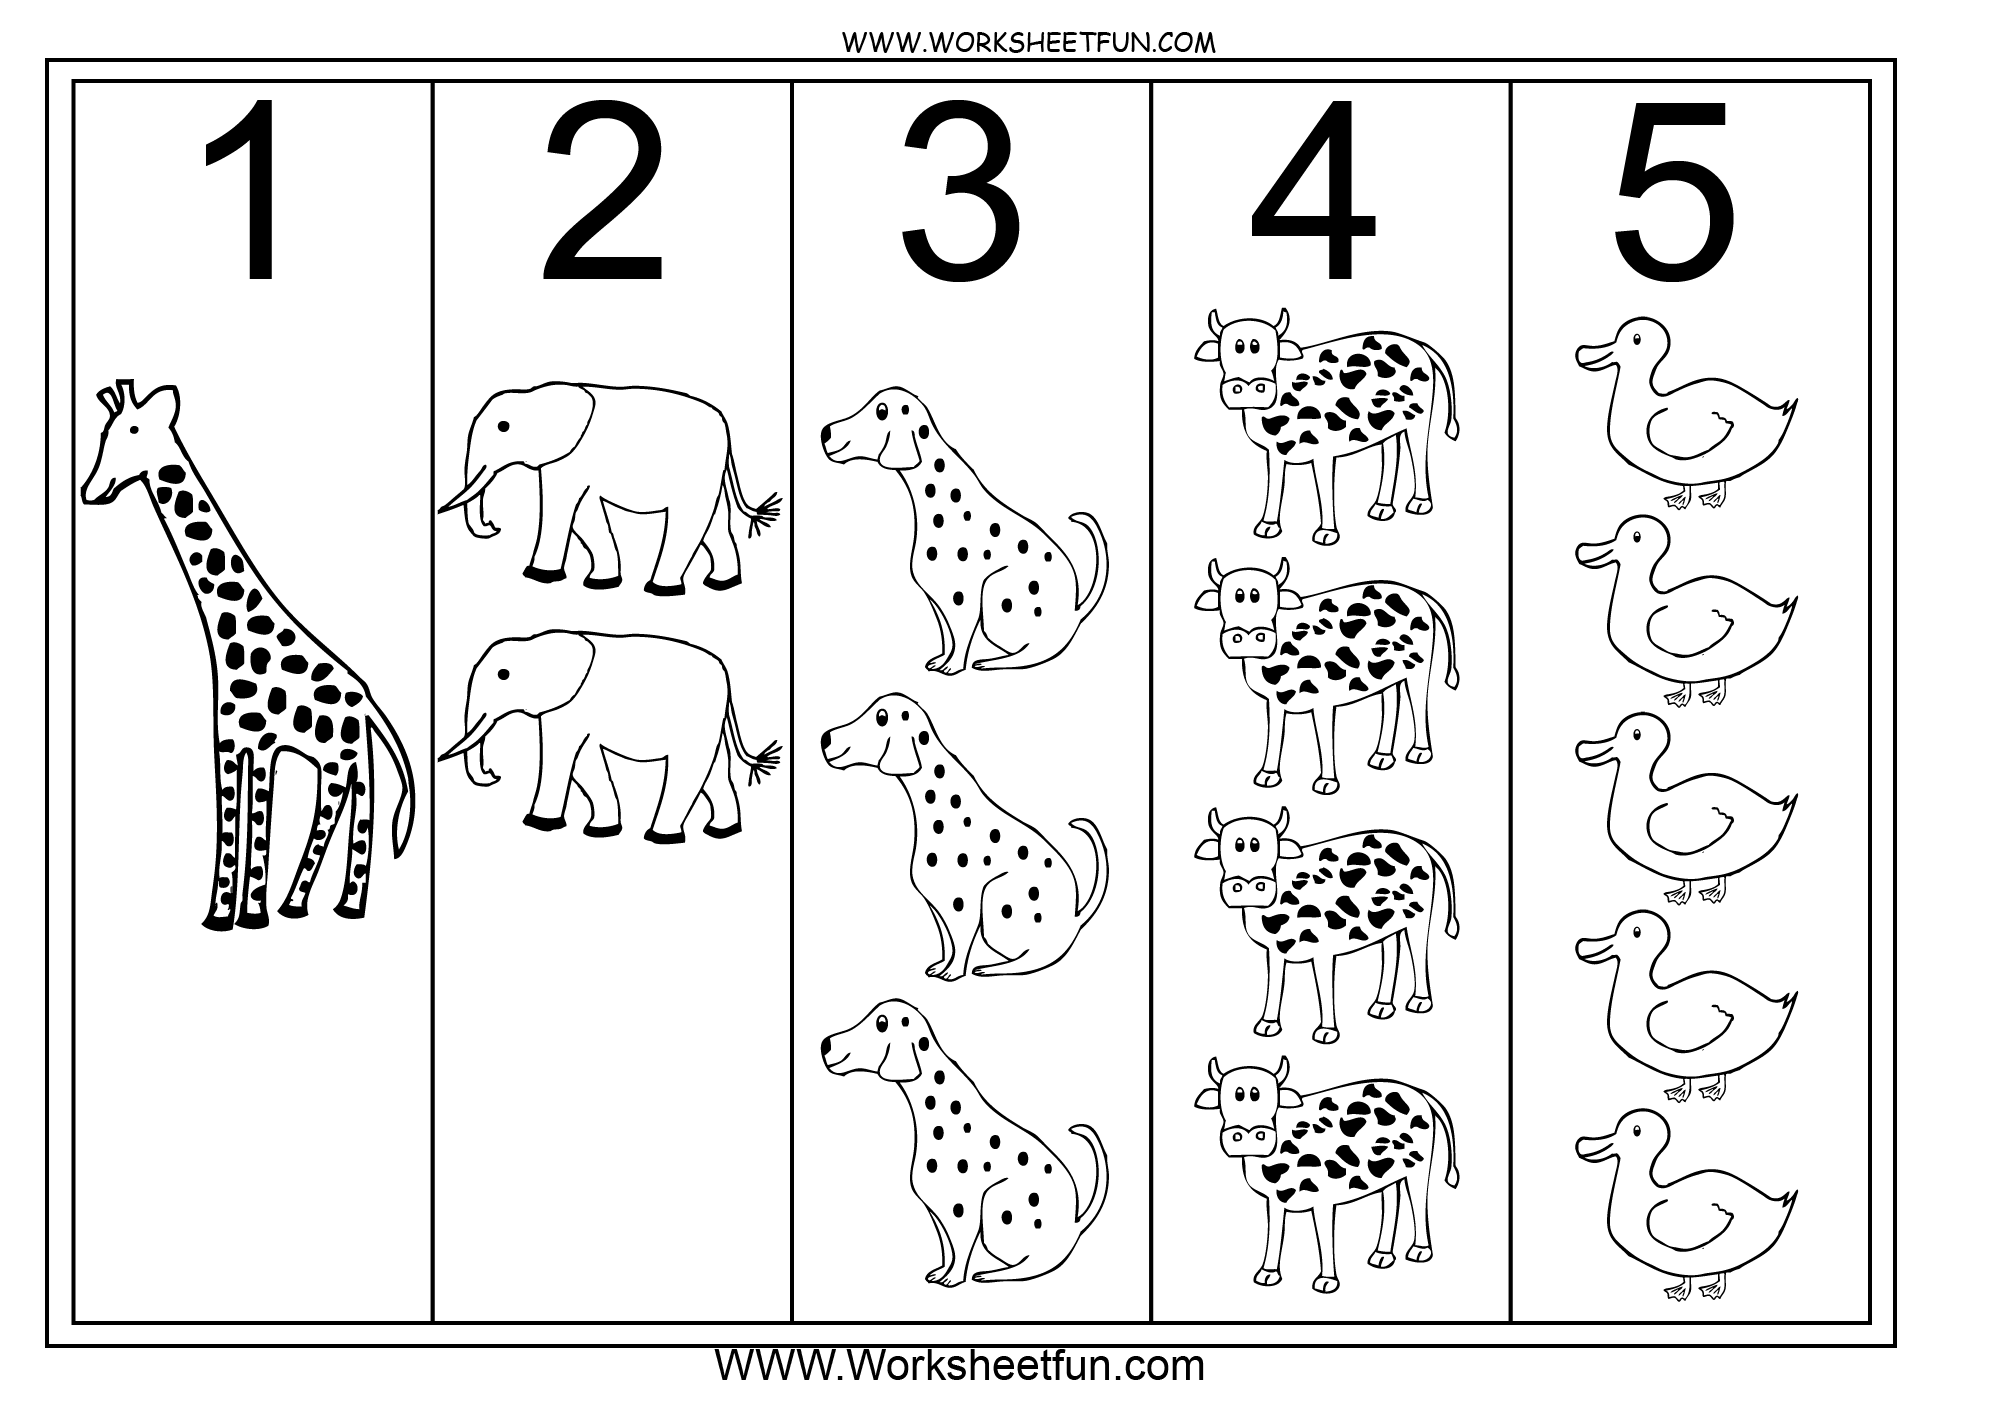 number 1 tracing worksheets for preschool number one worksheet preschool printable activities. Black Bedroom Furniture Sets. Home Design Ideas